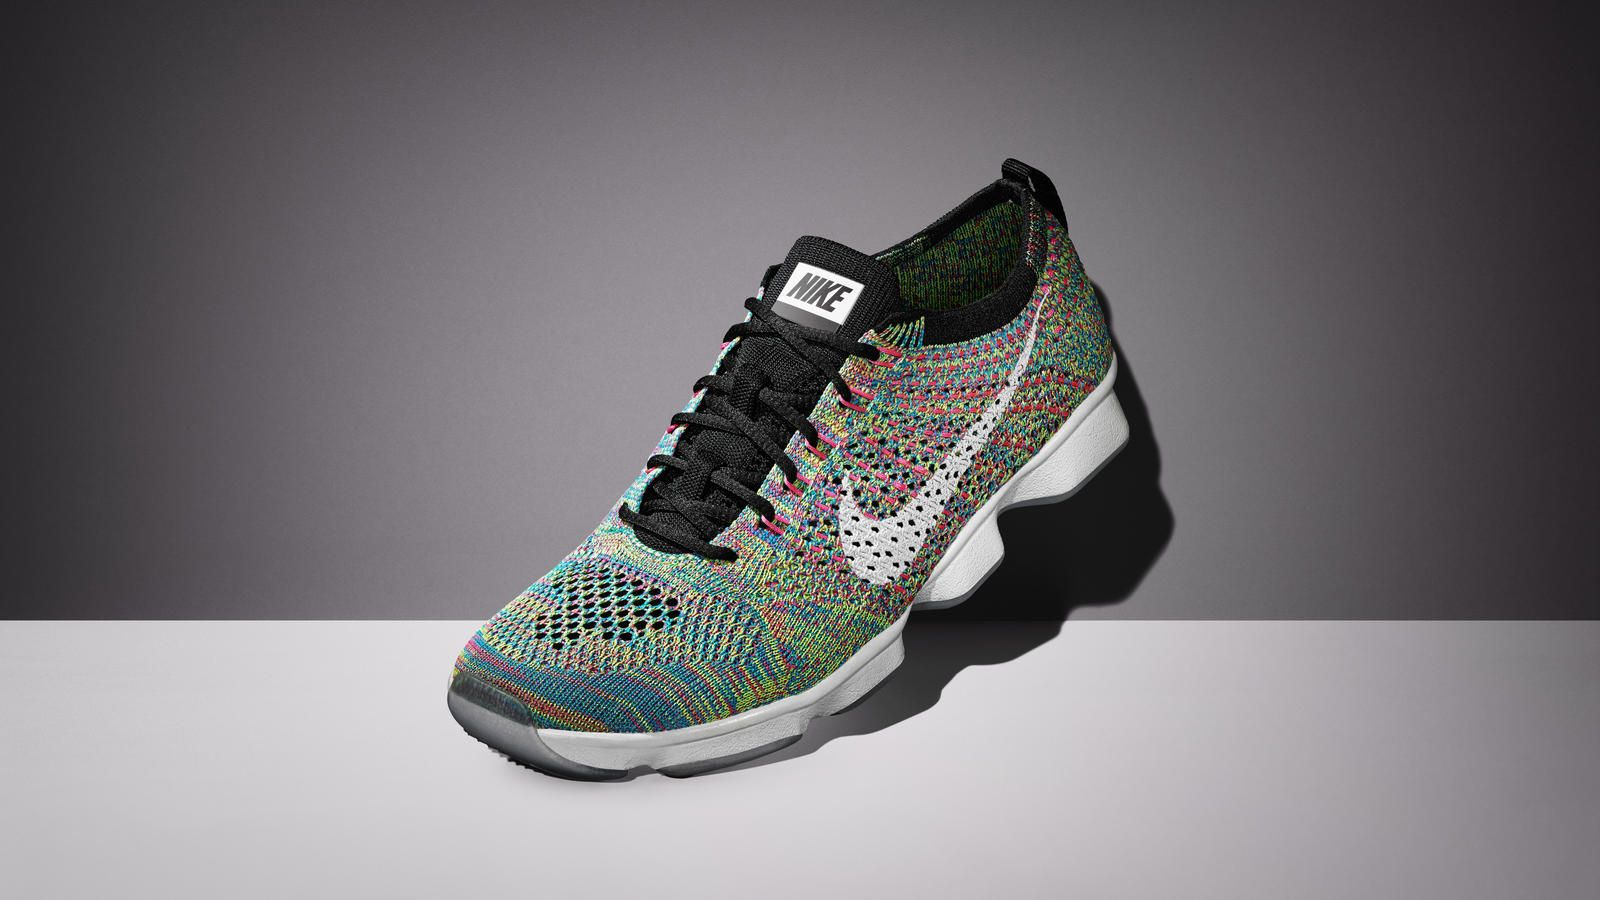 nike flyknit zoom agility fit multi color release date 1 Nike Zoom Fit  Agility Flyknit Multi Color Release Date